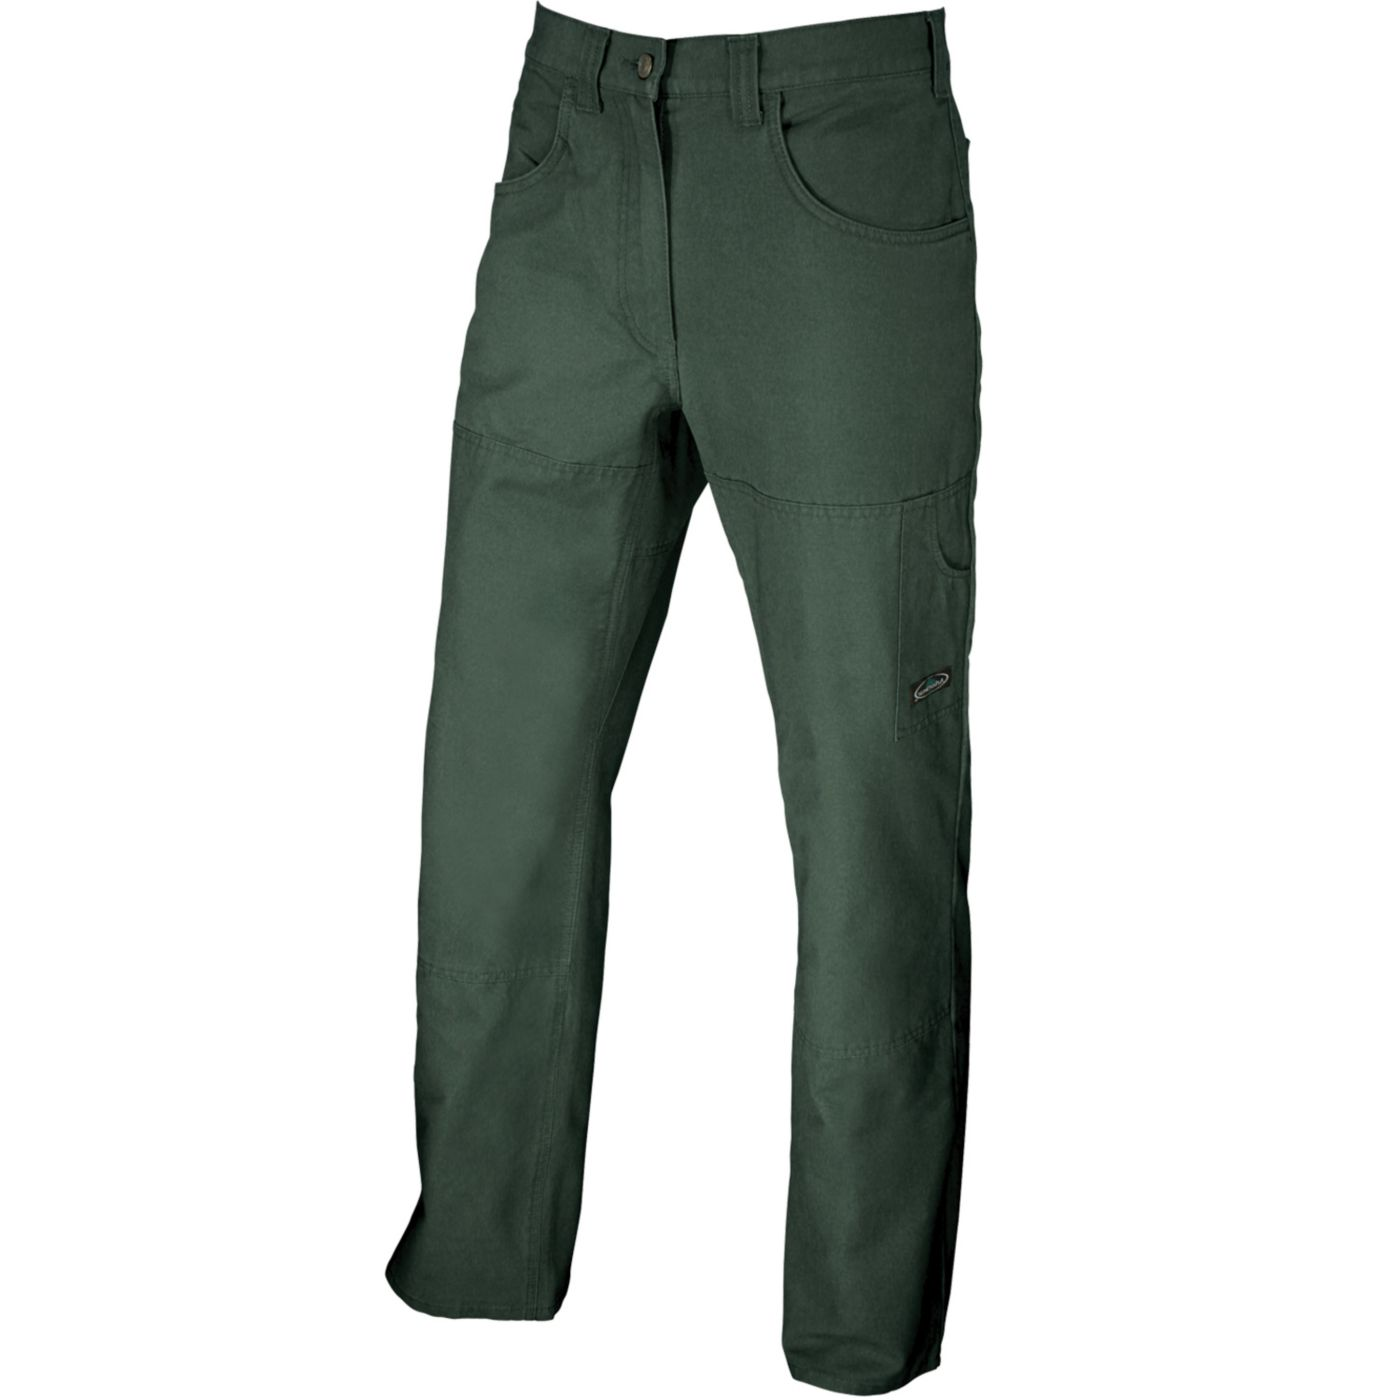 Arborwear Men's Lightweight Originals Pants